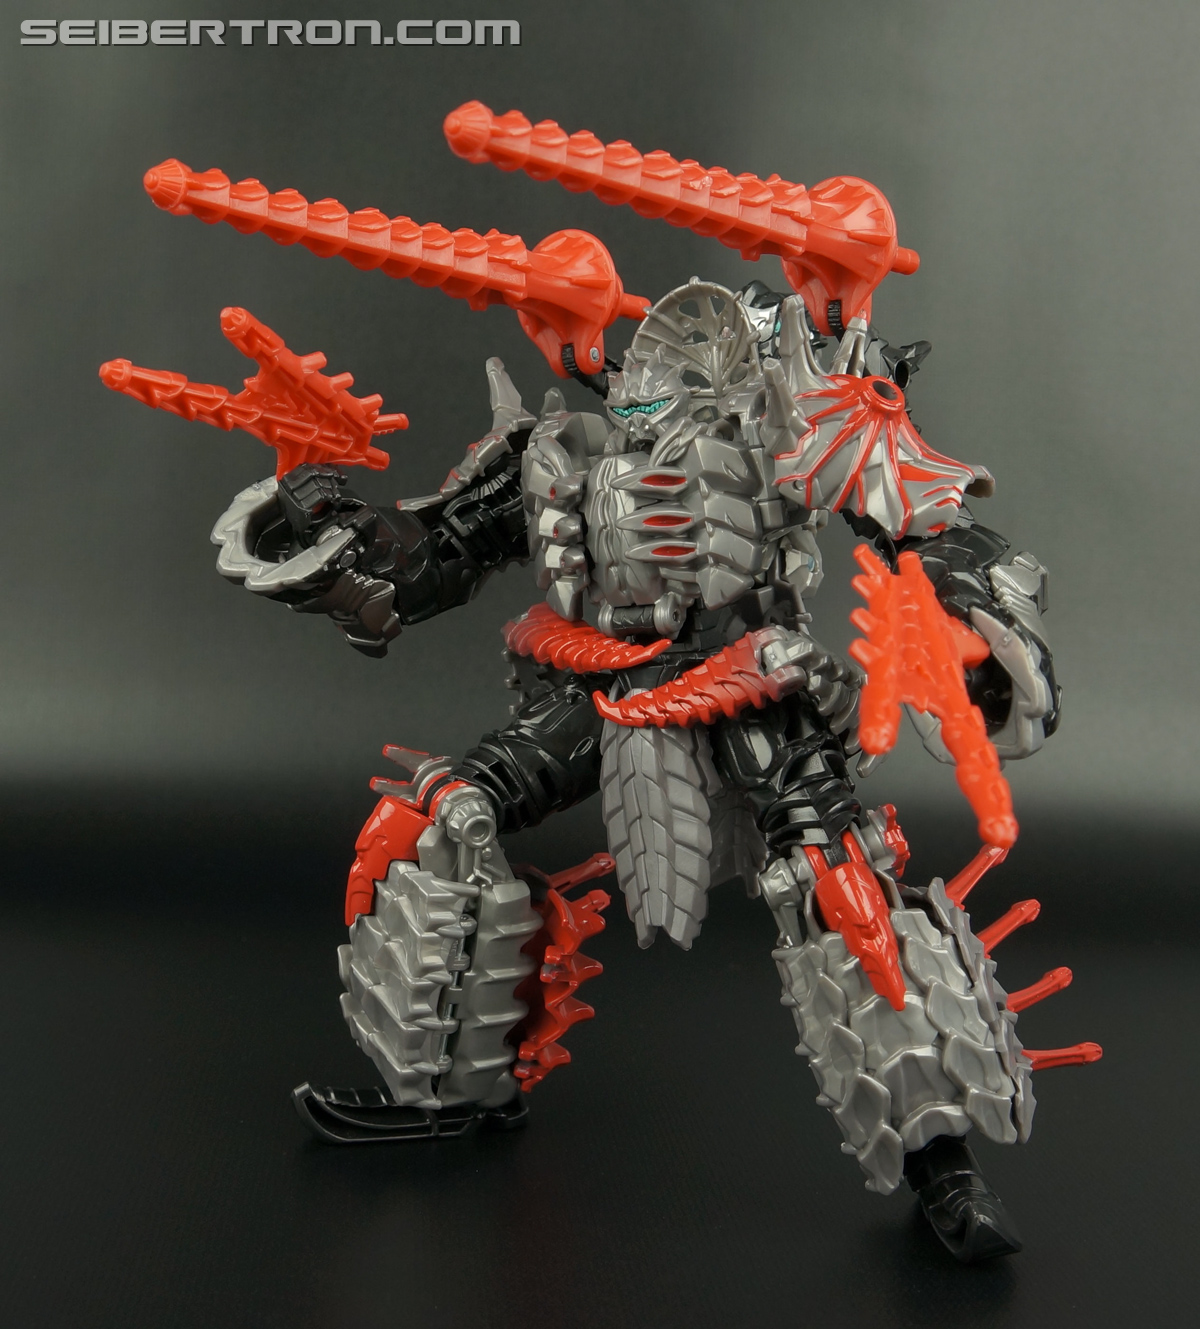 Transformers Age of Extinction: Generations Slog (Image #174 of 208)